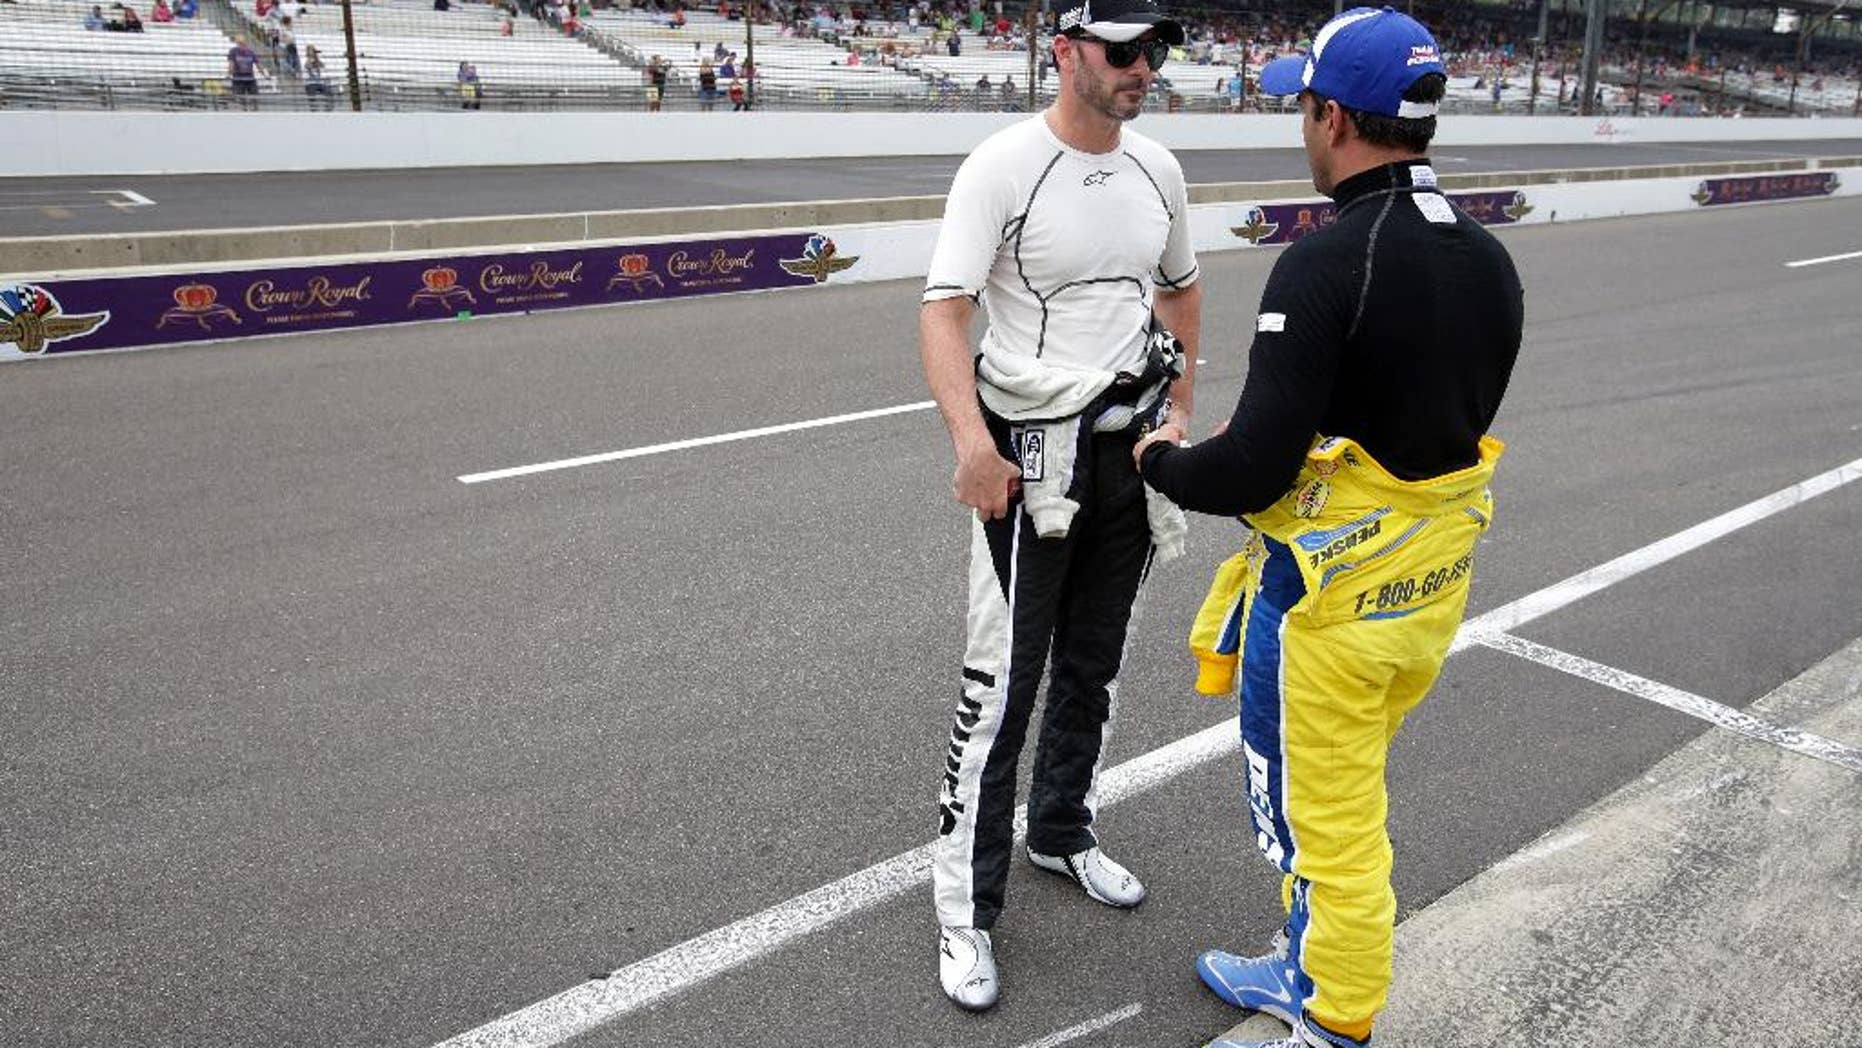 Jimmie Johnson, left, talks with Juan Pablo Montoya after qualifications for the Brickyard 400 auto race at the Indianapolis Motor Speedway in Indianapolis, Saturday, July 26, 2014. (AP Photo/AJ Mast)